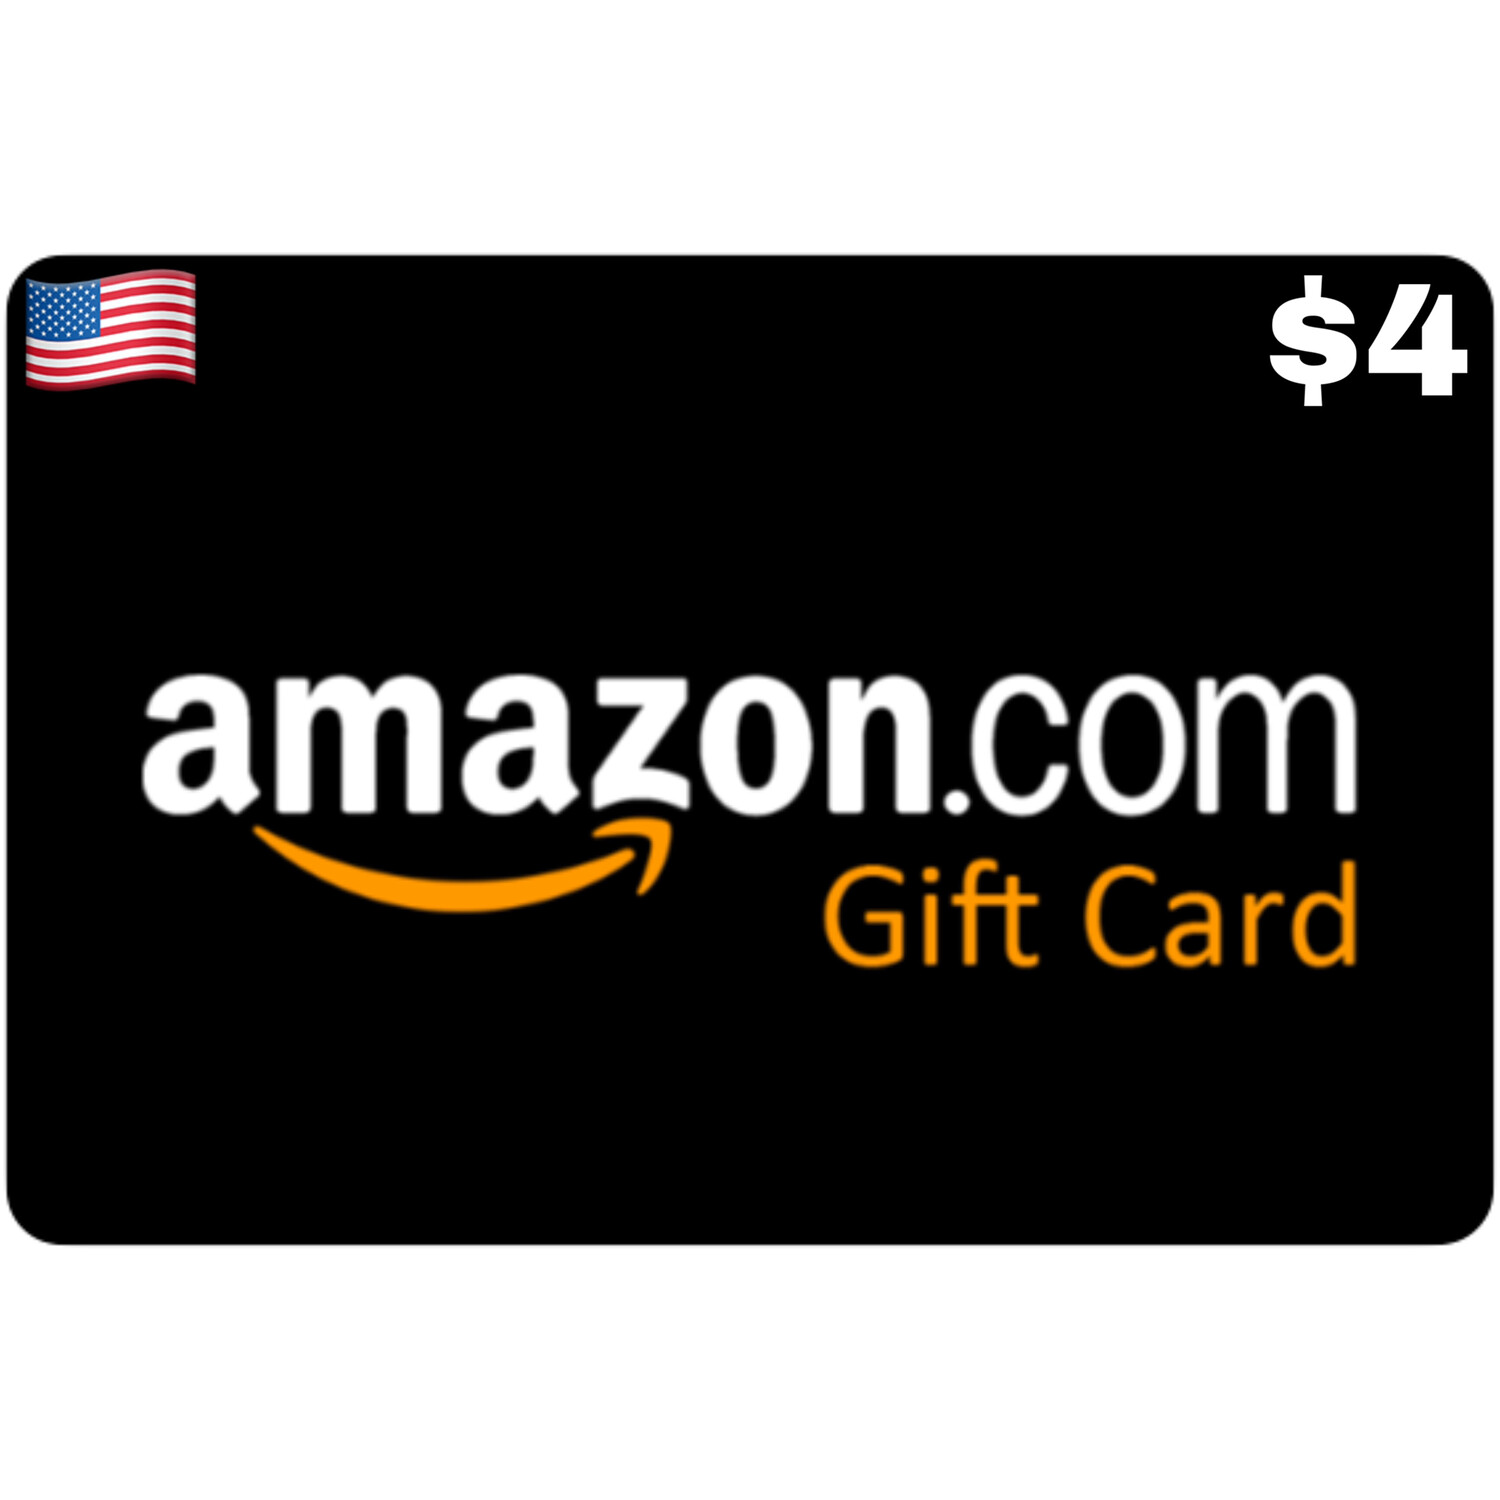 Amazon.com Gift Card US $4 Email Delivery